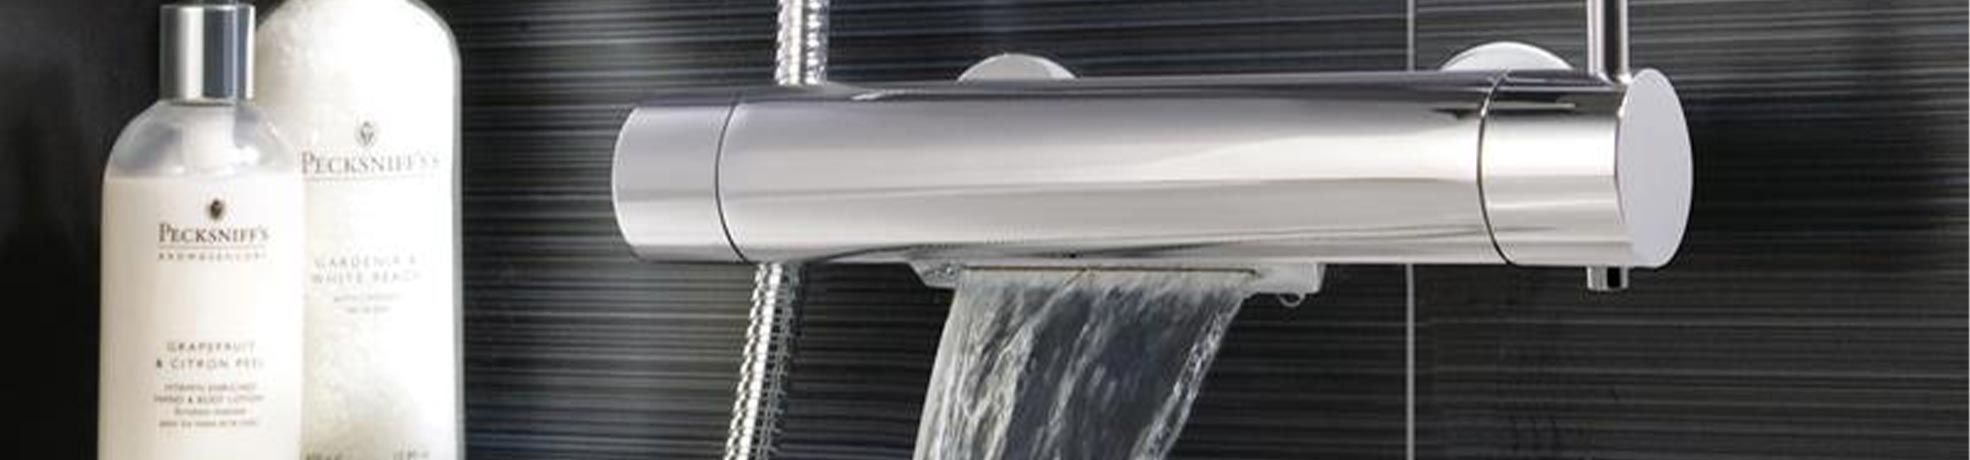 Thermostatic Bath Shower Mixers